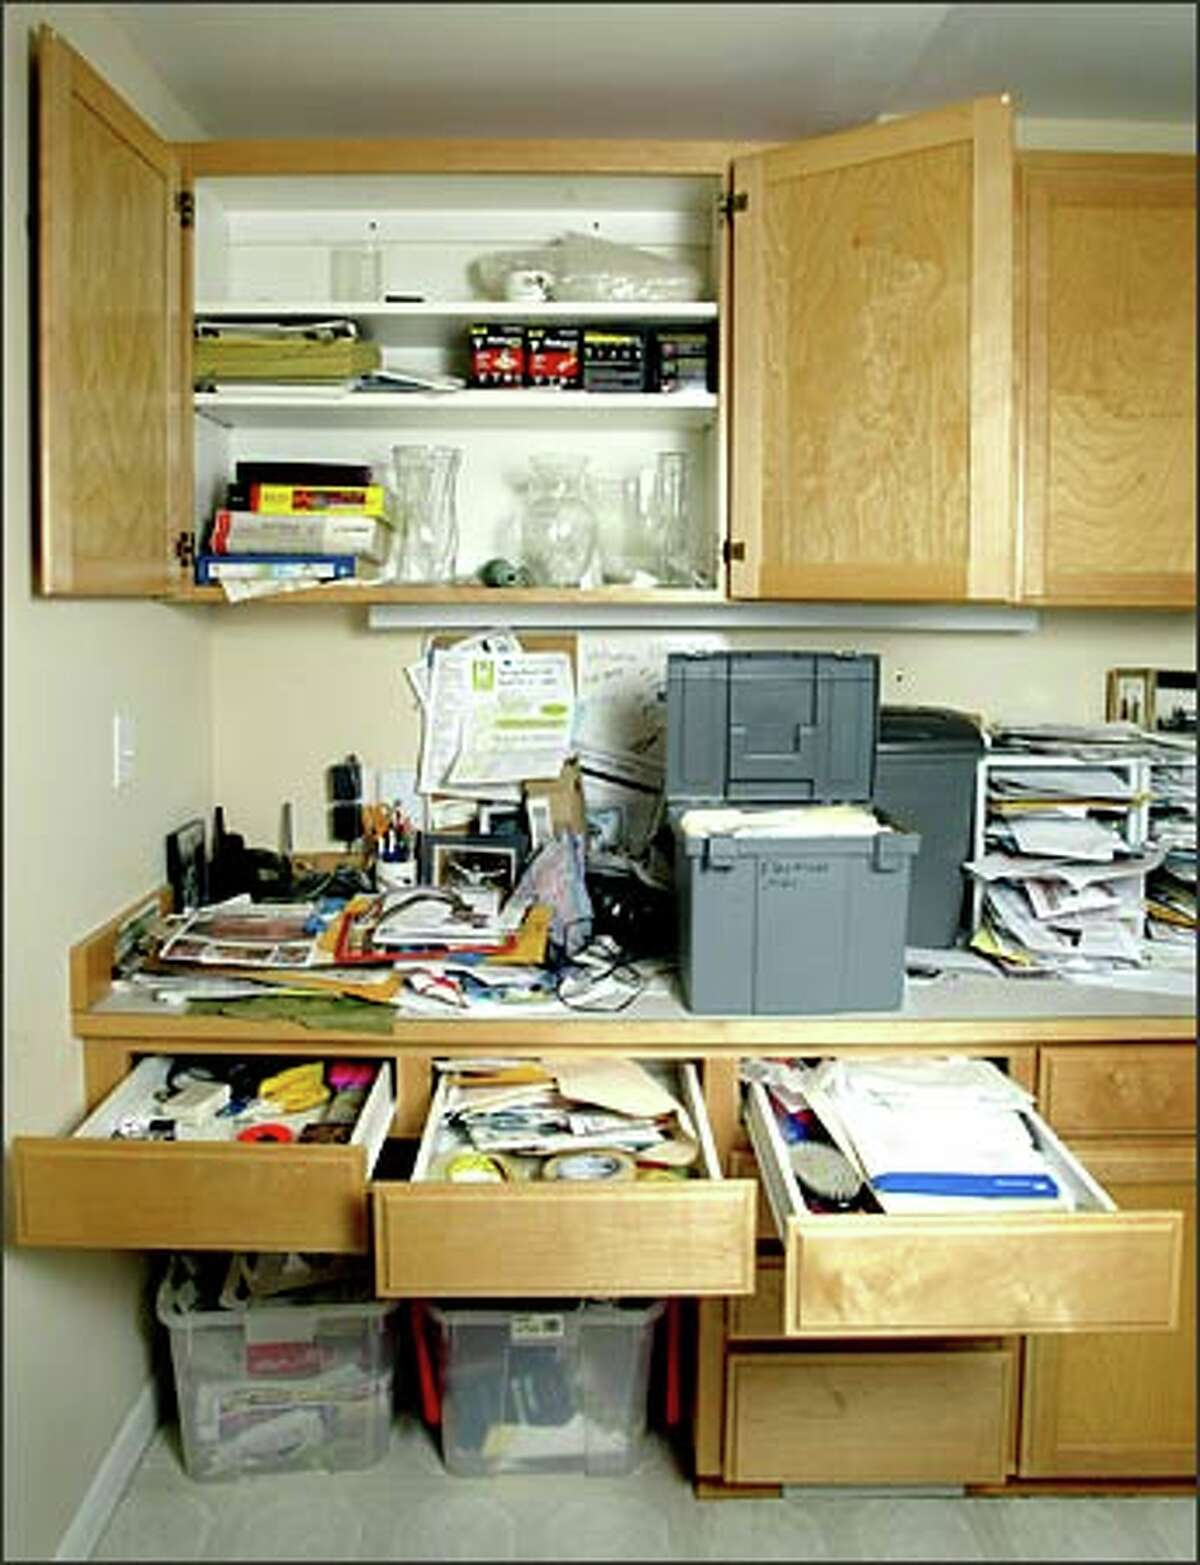 Counters, drawers and cabinets are stuffed in P-I reporter Rebekah Denn's kitchen office, crying out for a good de-cluttering.